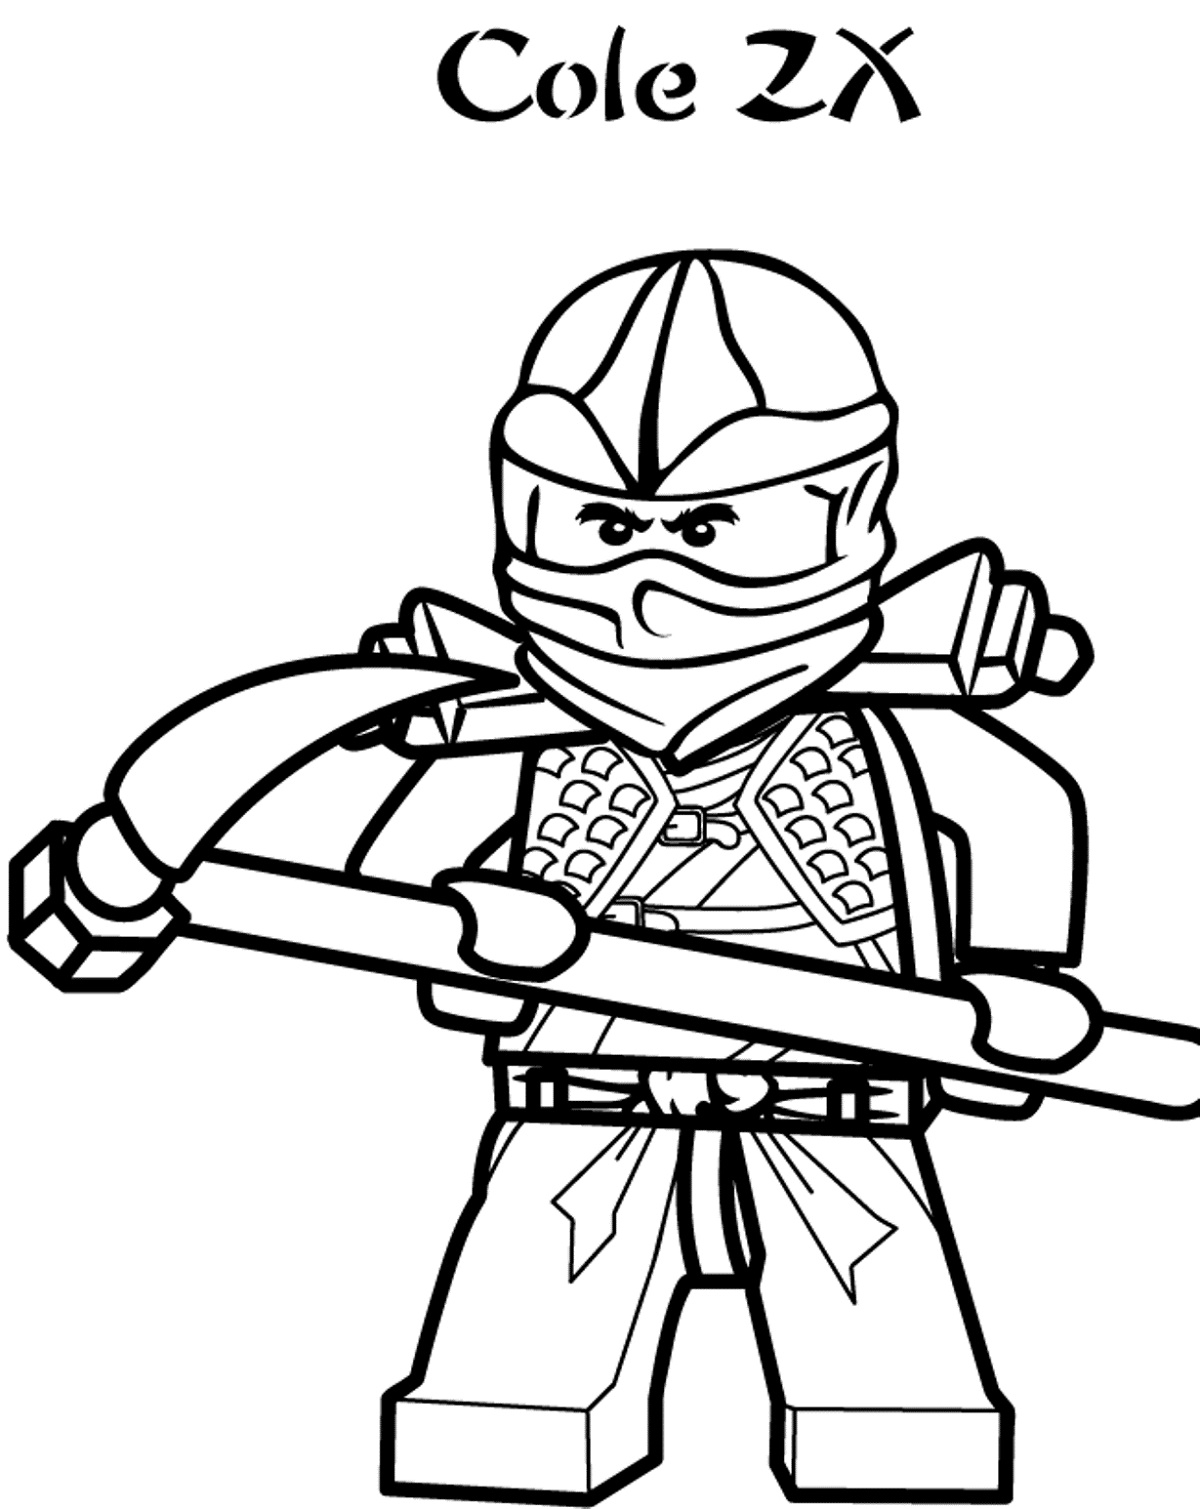 Lego Ninjago Coloring Pages Cole